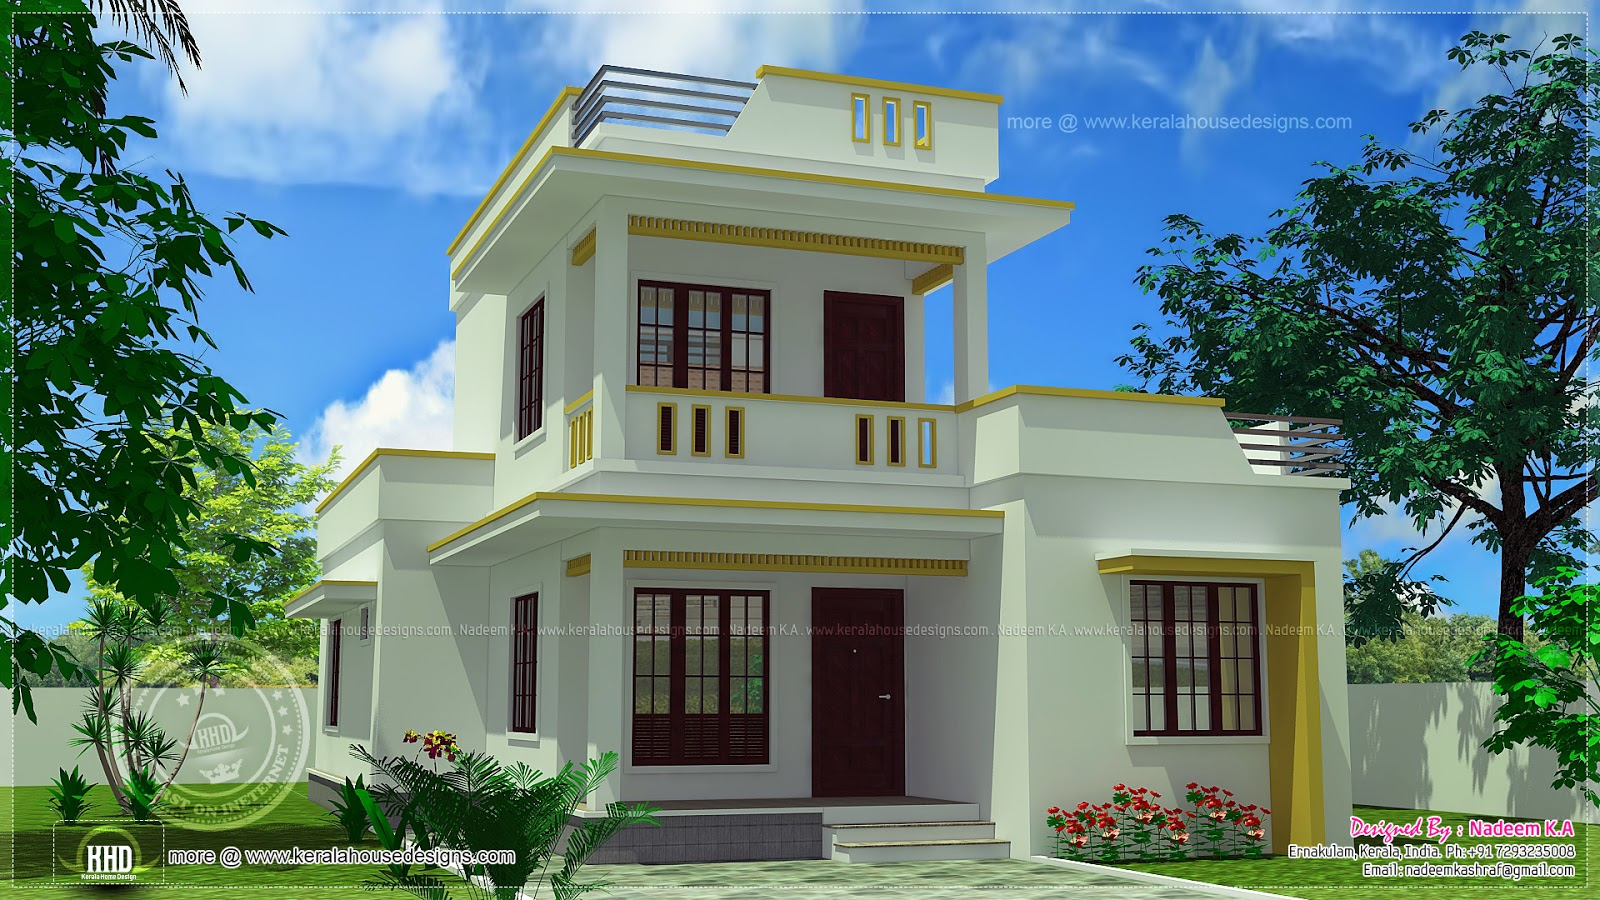 August 2013 kerala home design and floor plans for Basic house design